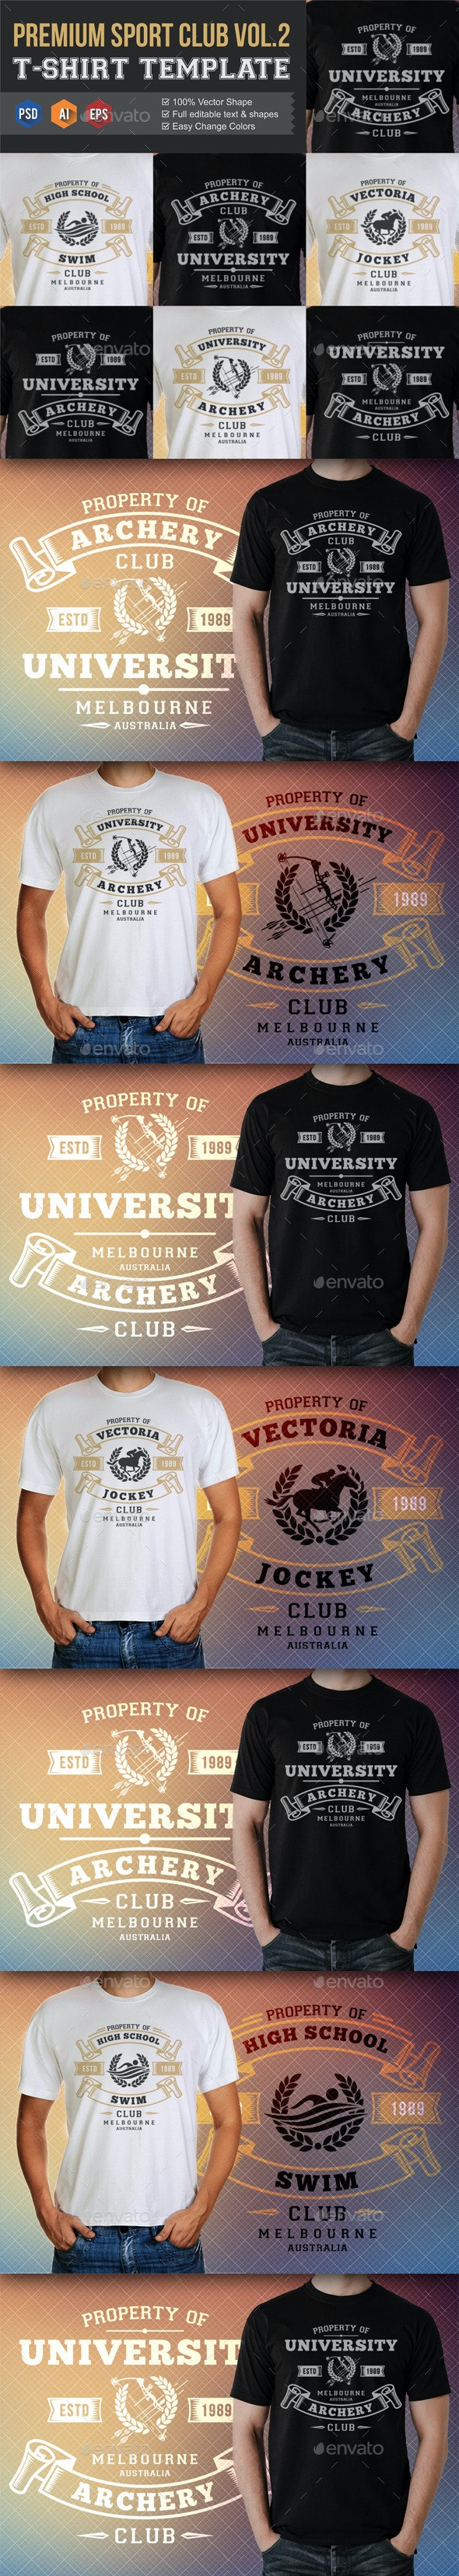 premium sports club teams t shirt templates v2 by ideaofart graphicriver graphicriver